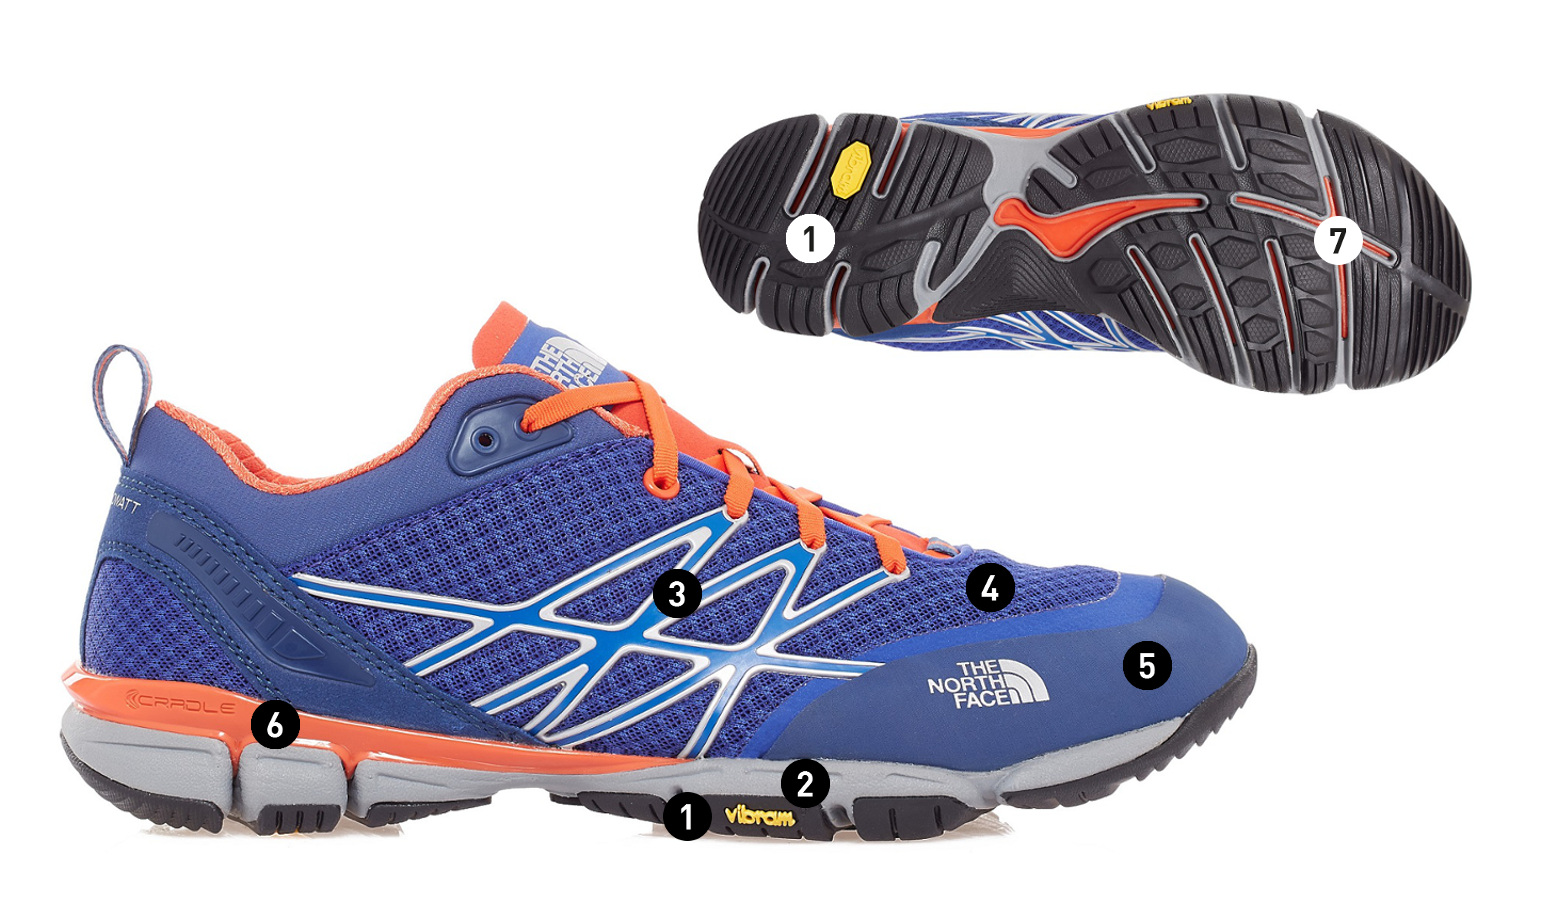 Chaussure running occasionnel